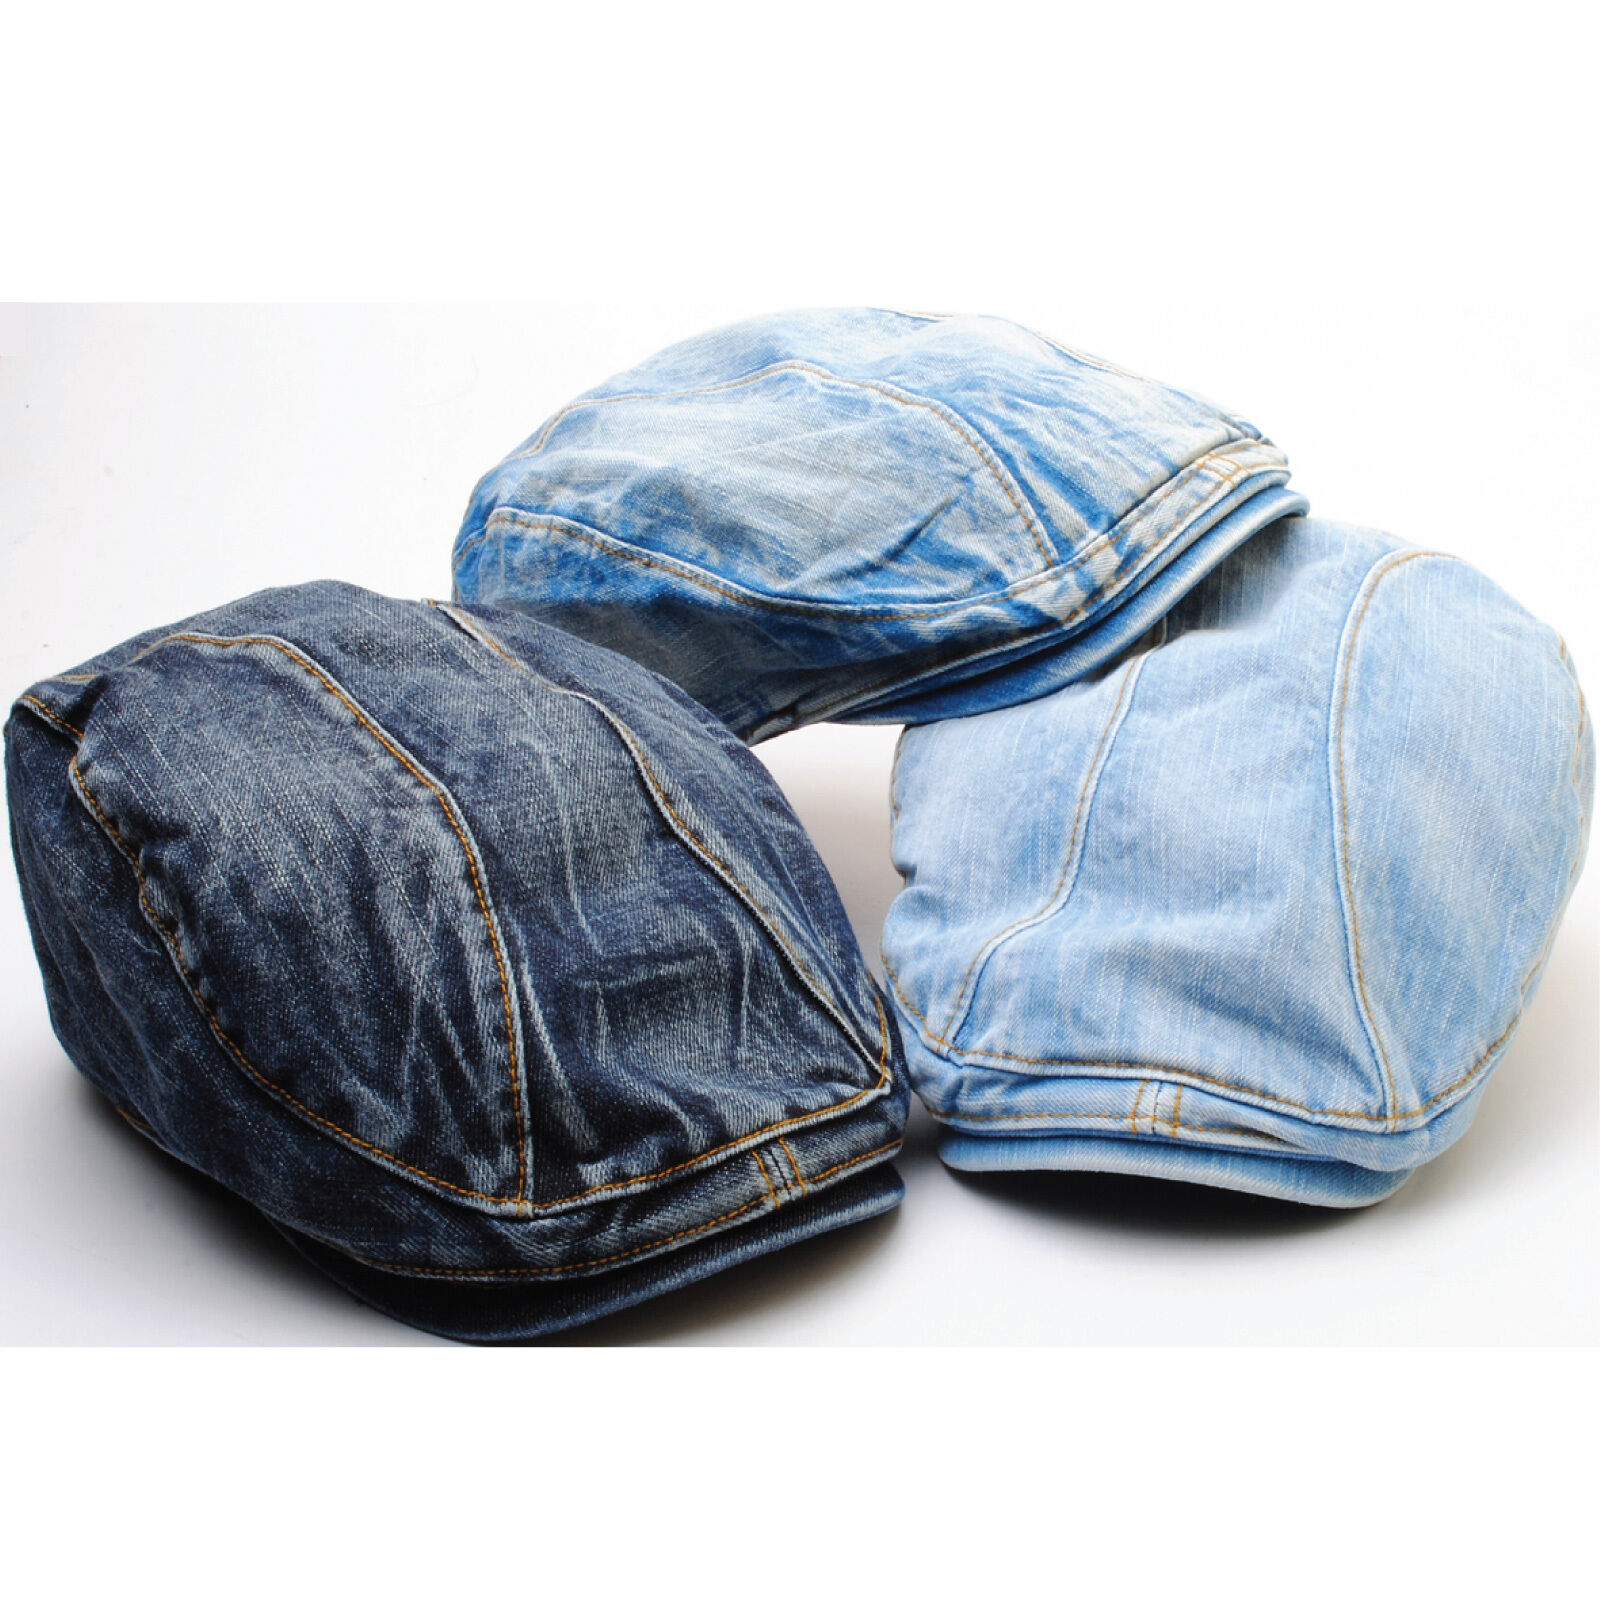 9791d4757 N65 Distressed Washed Denim Newsboy Biker Jeans Feel Cap Cabbie Gatsby  Beret Hat